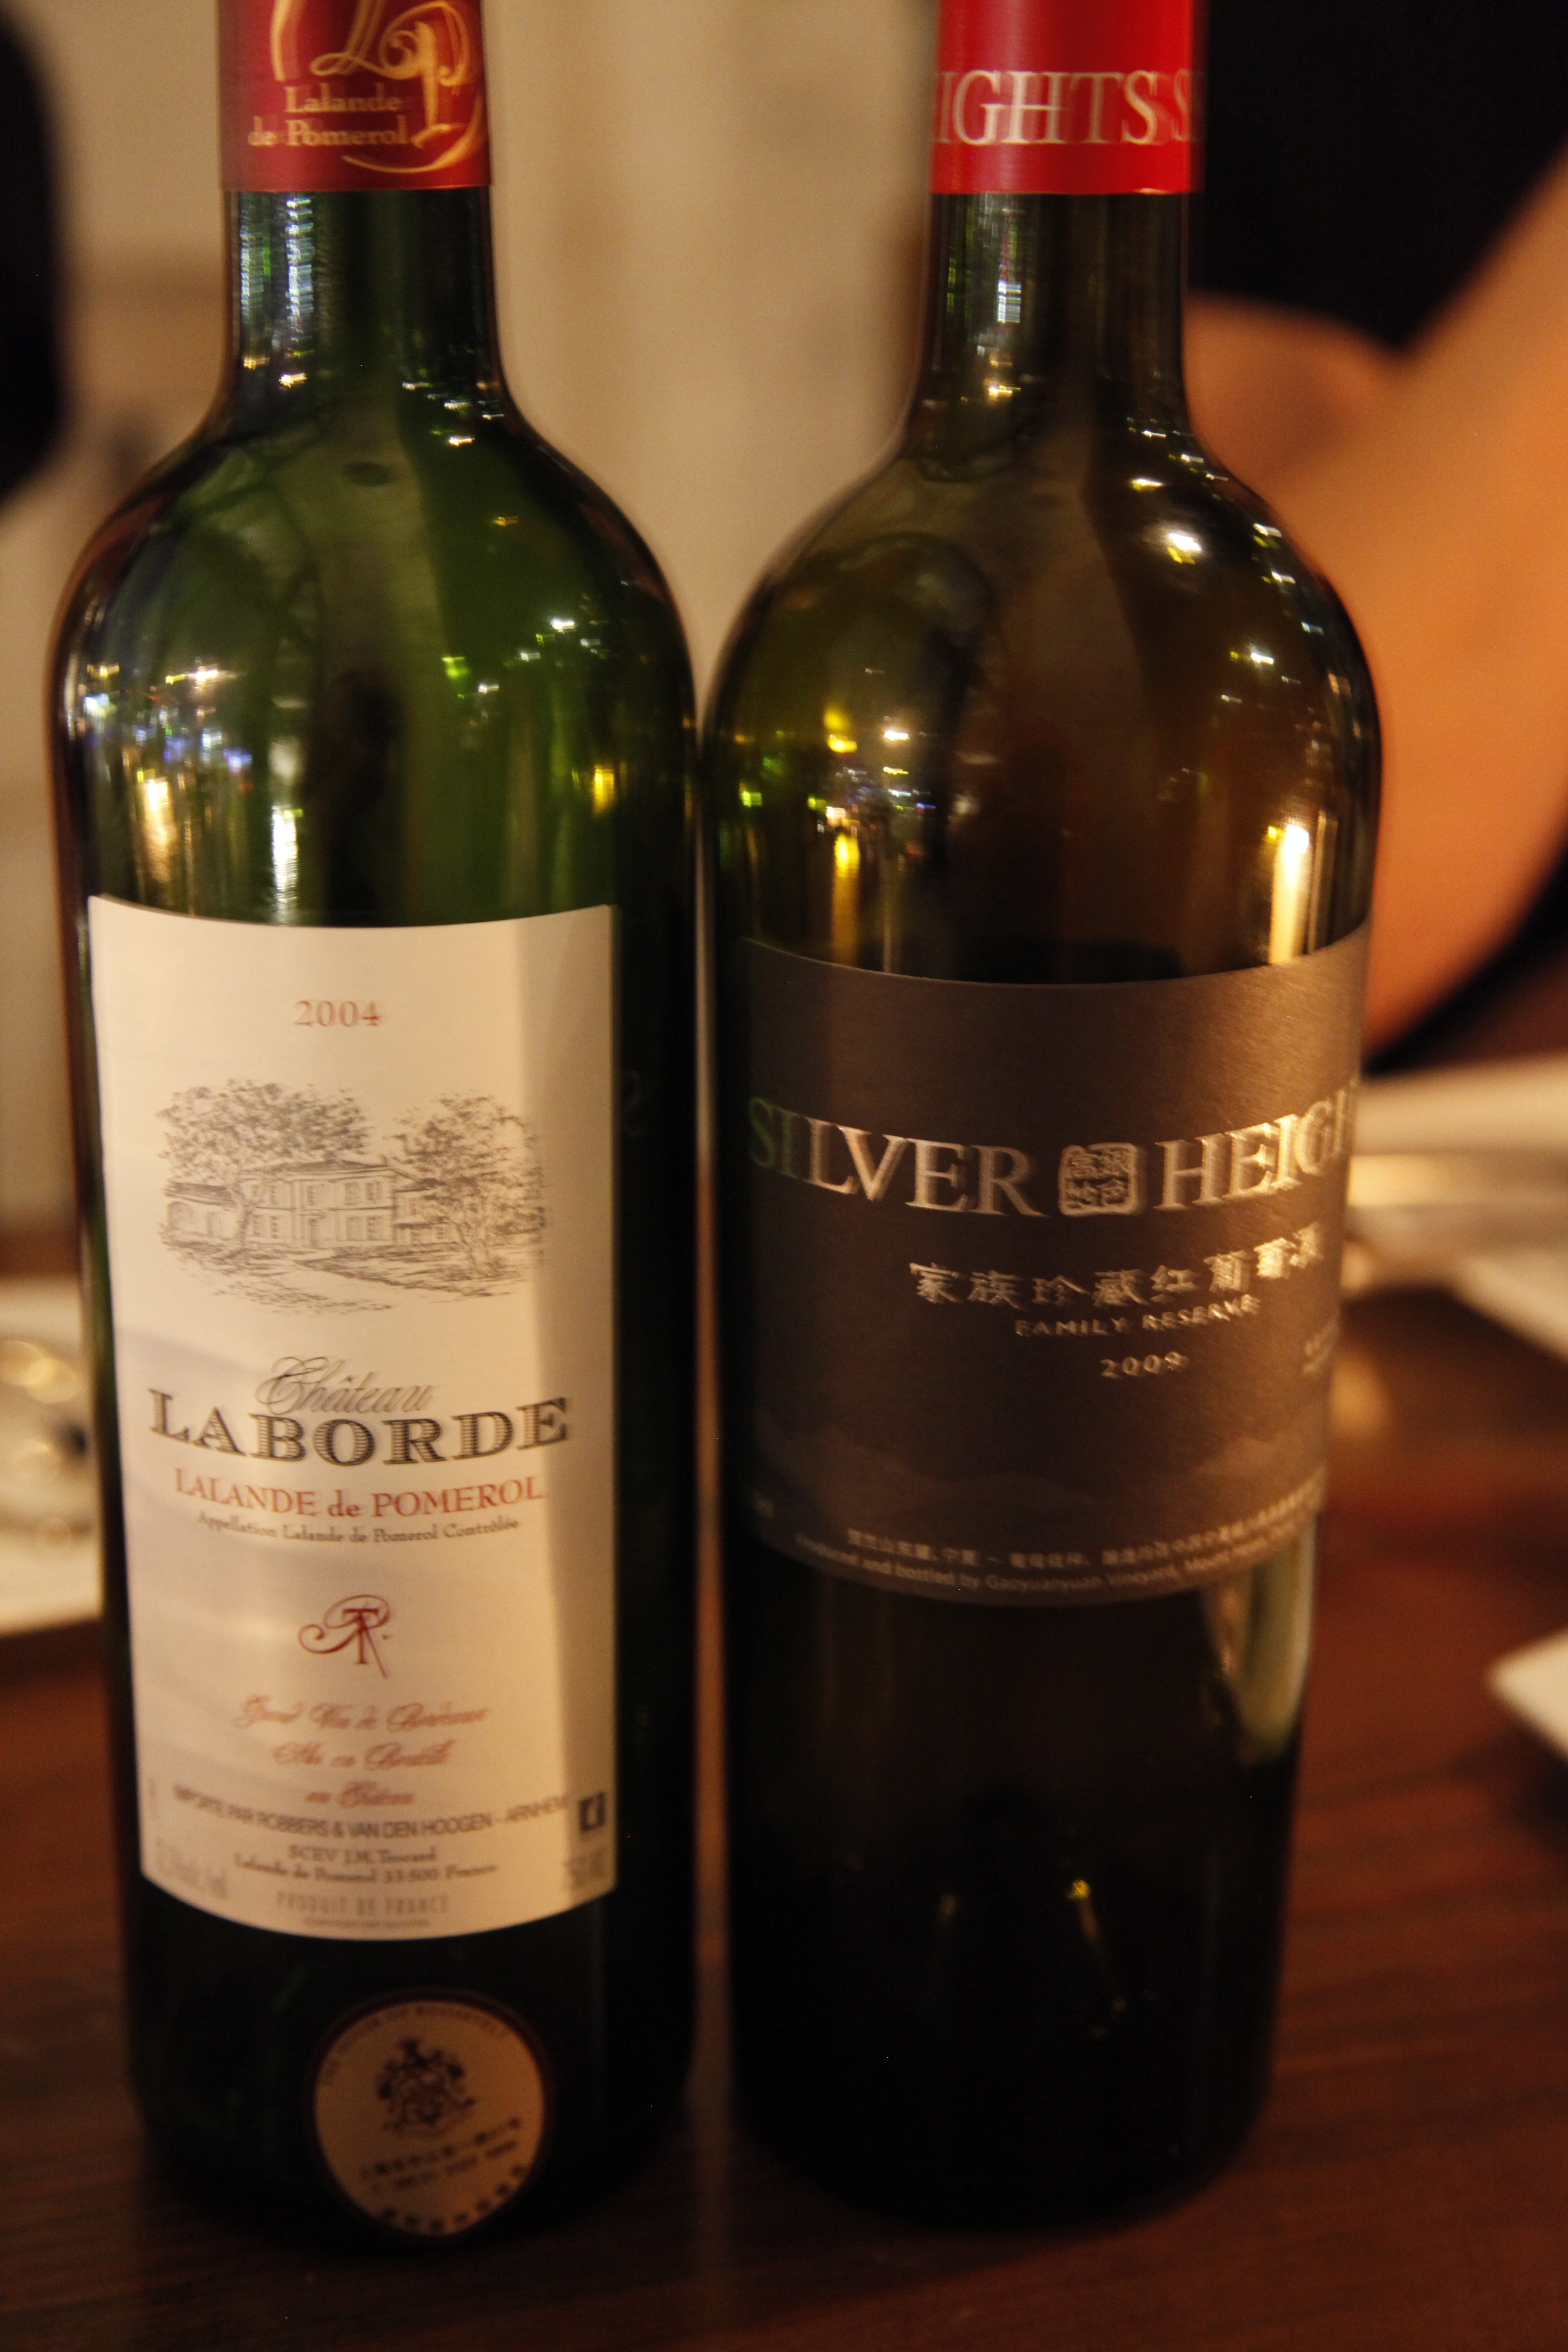 The two Bordeaux blends - left Pomerol, right the Chinese version